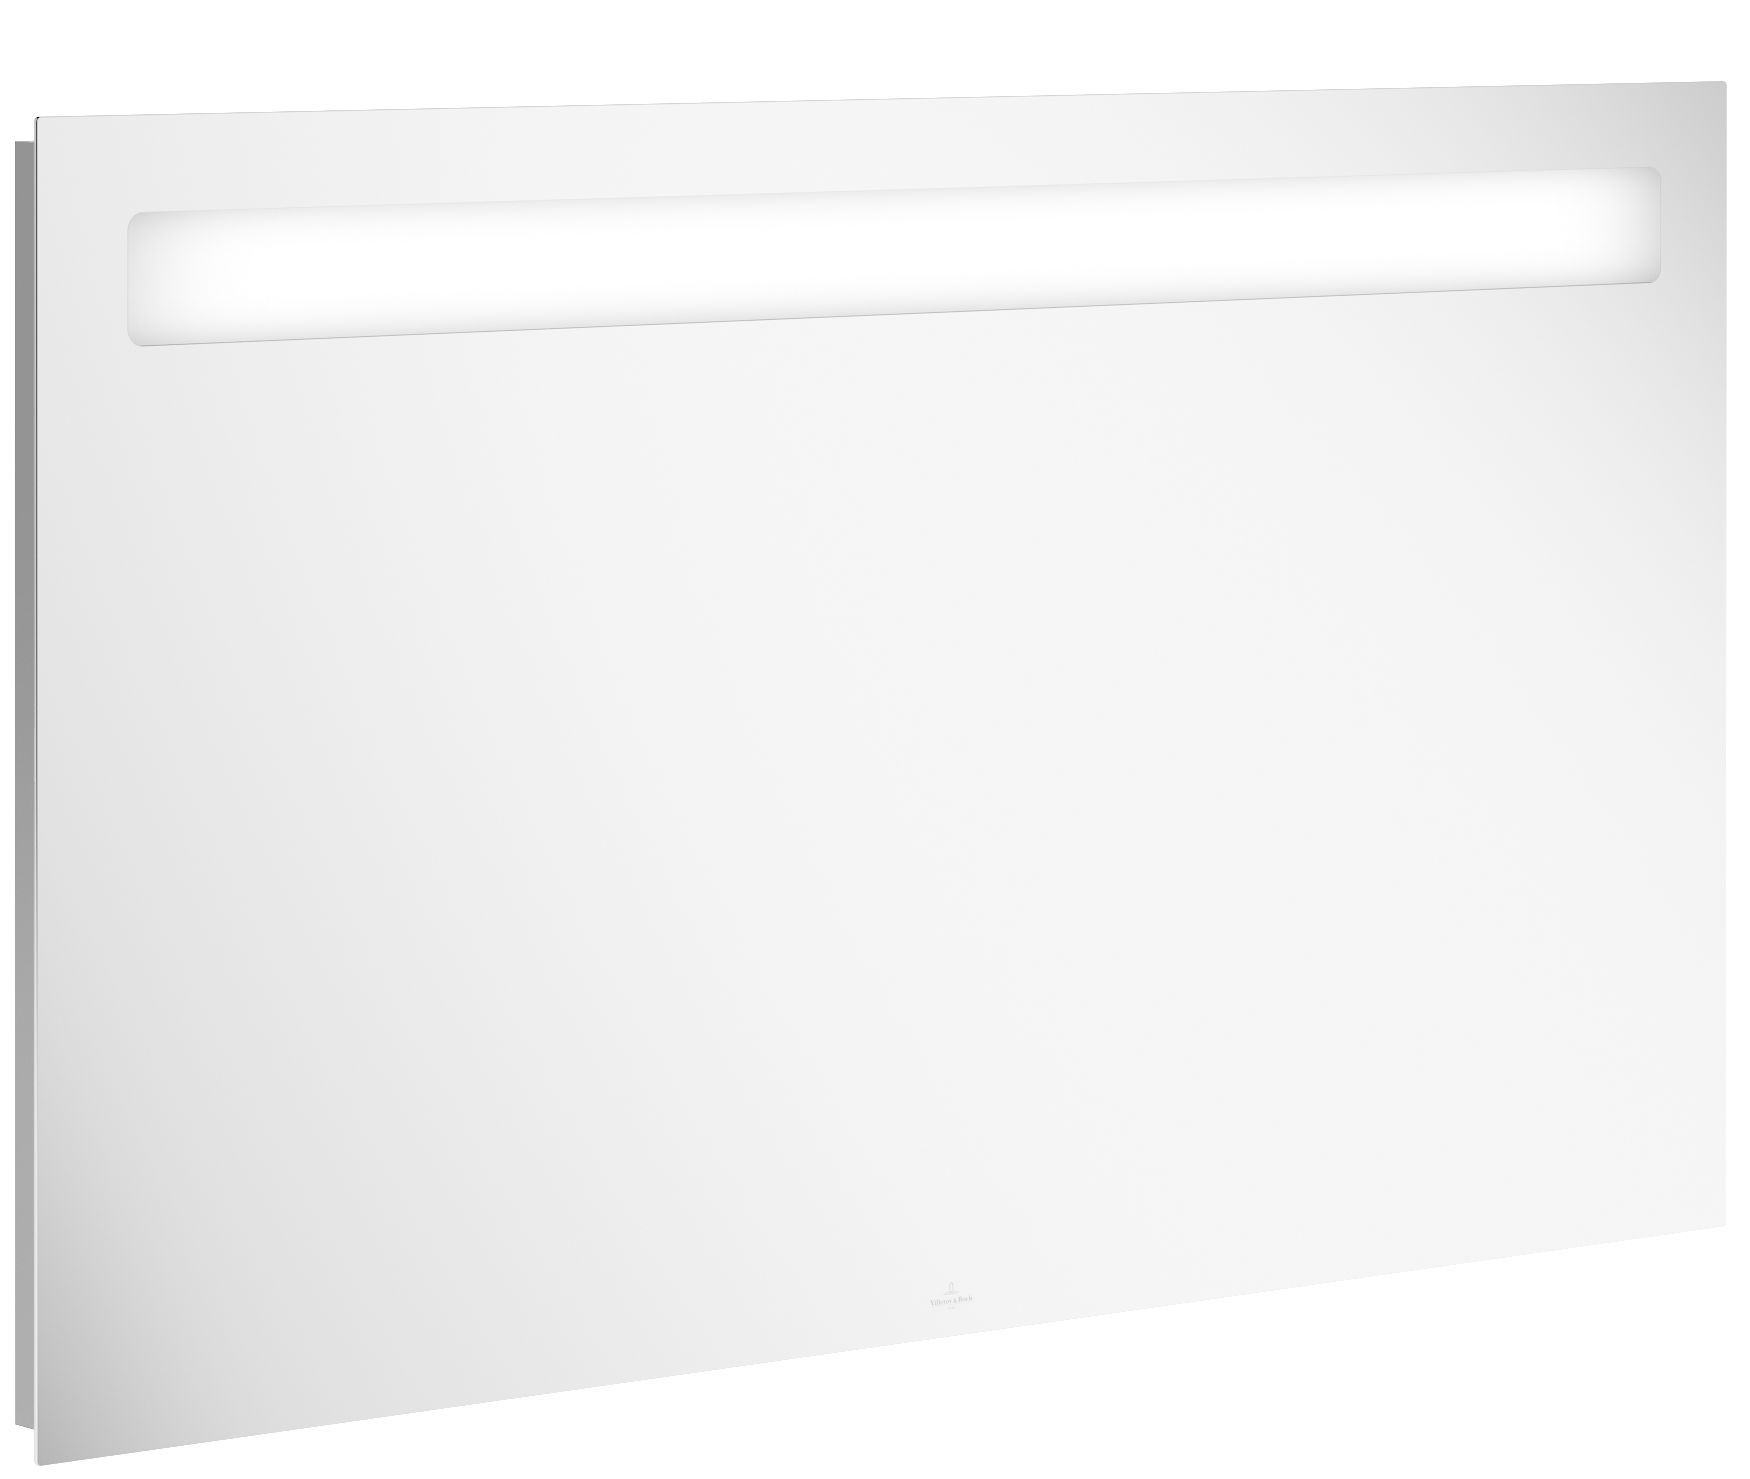 Villeroy & Boch More to See 14 Spiegel mit LED-Beleuchtung B: 130 cm A4291300